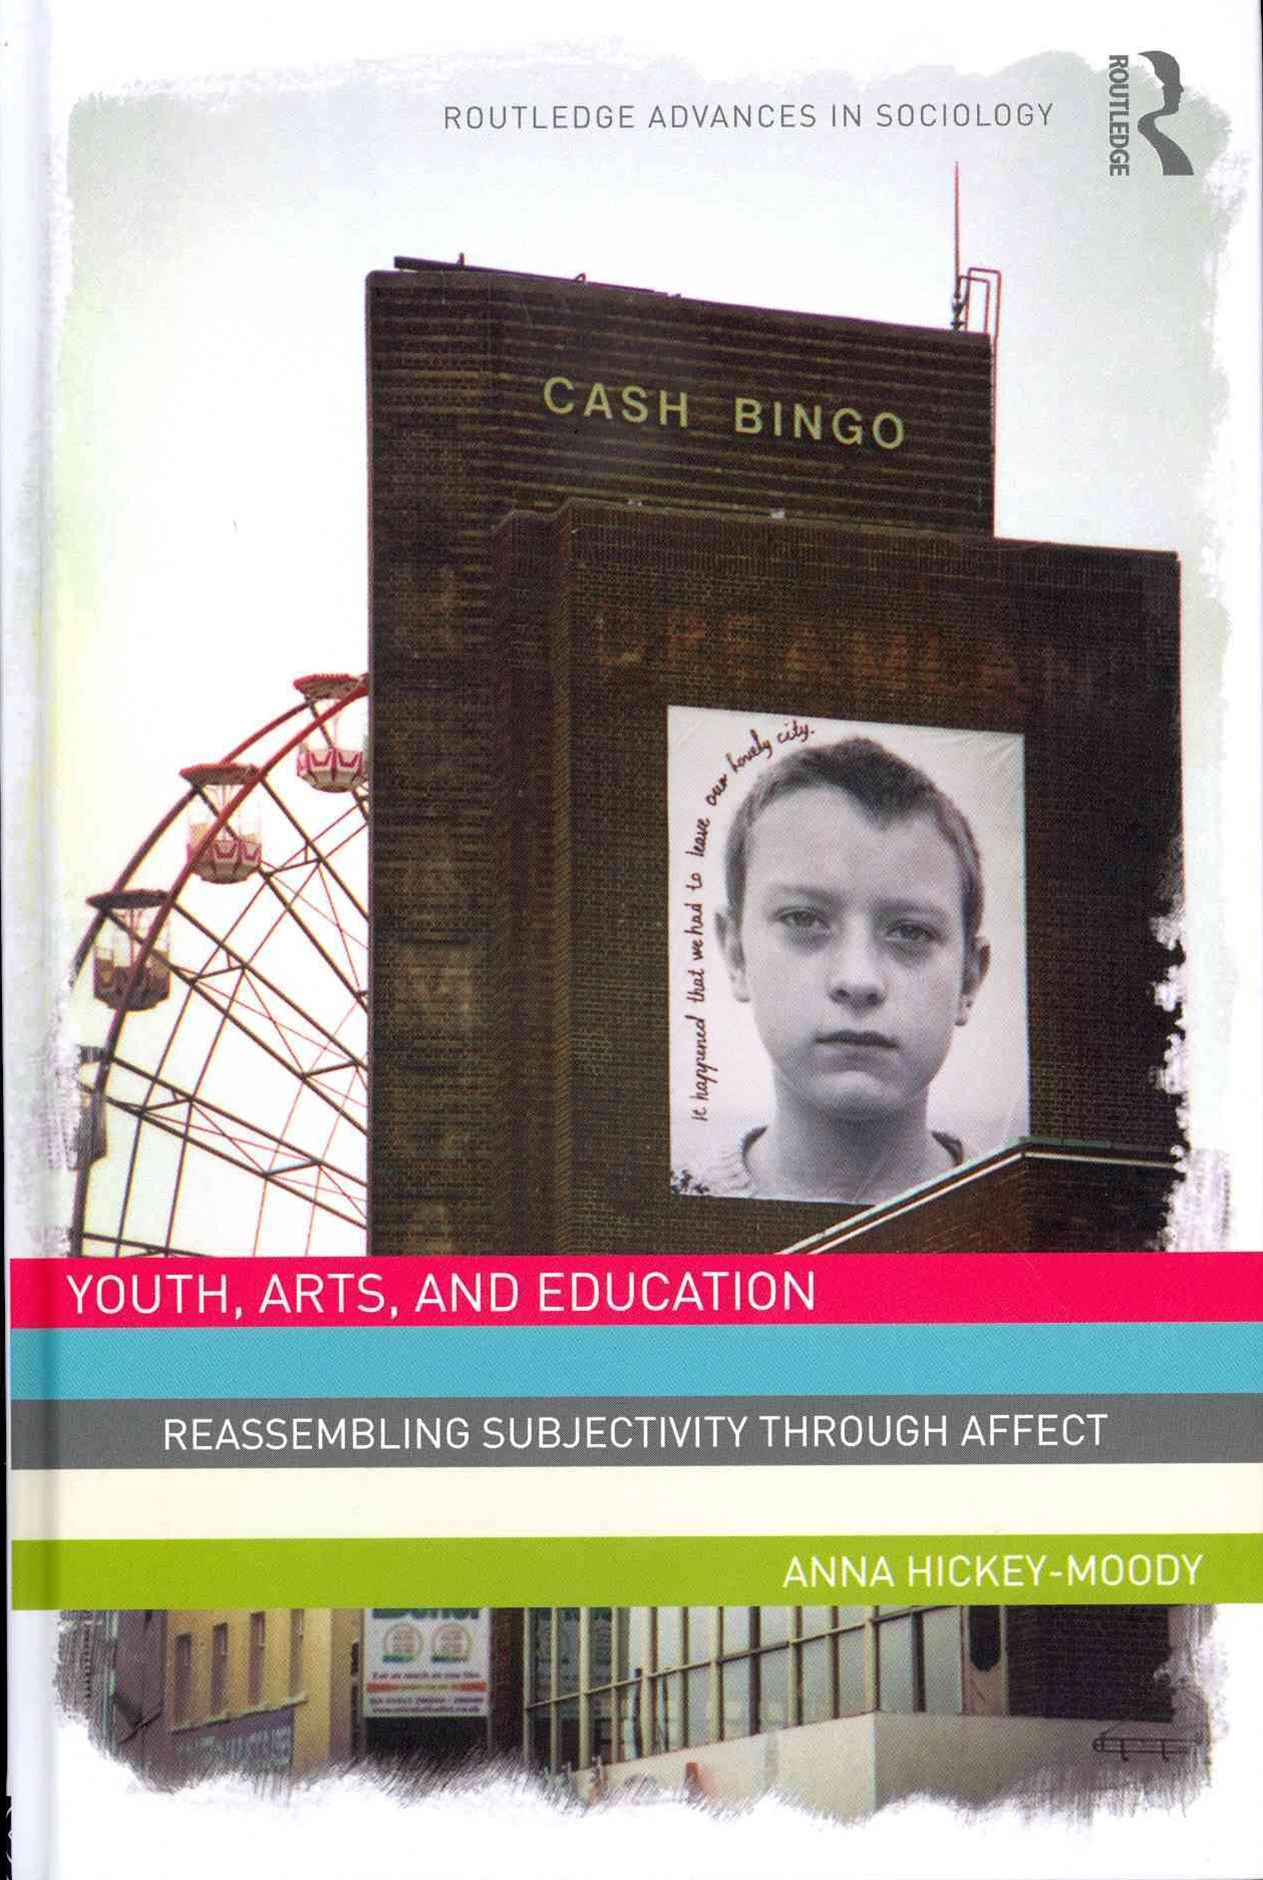 Youth, Arts and Education